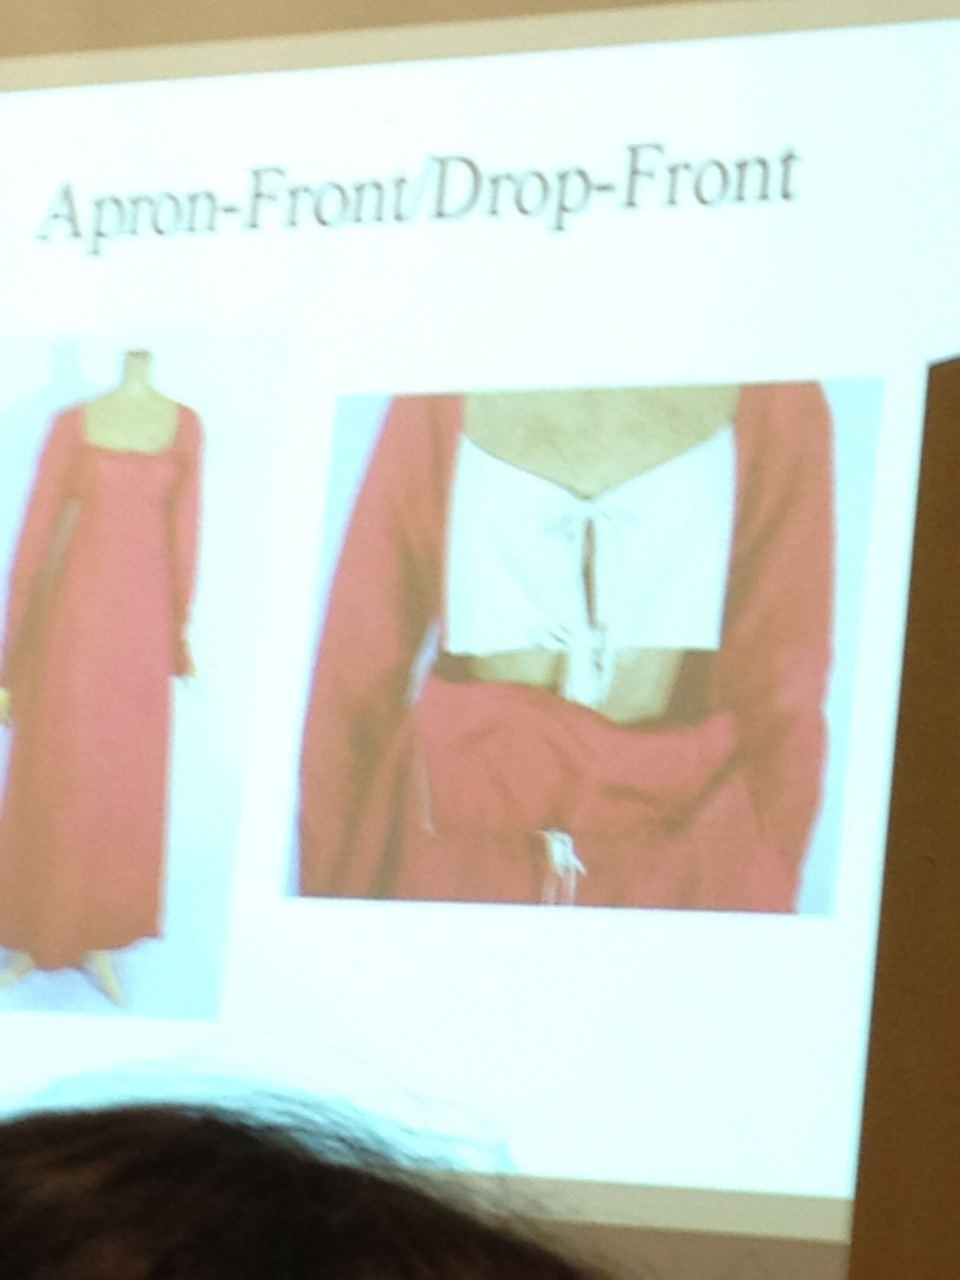 Image of Apron-Front gown before show & tell started =)